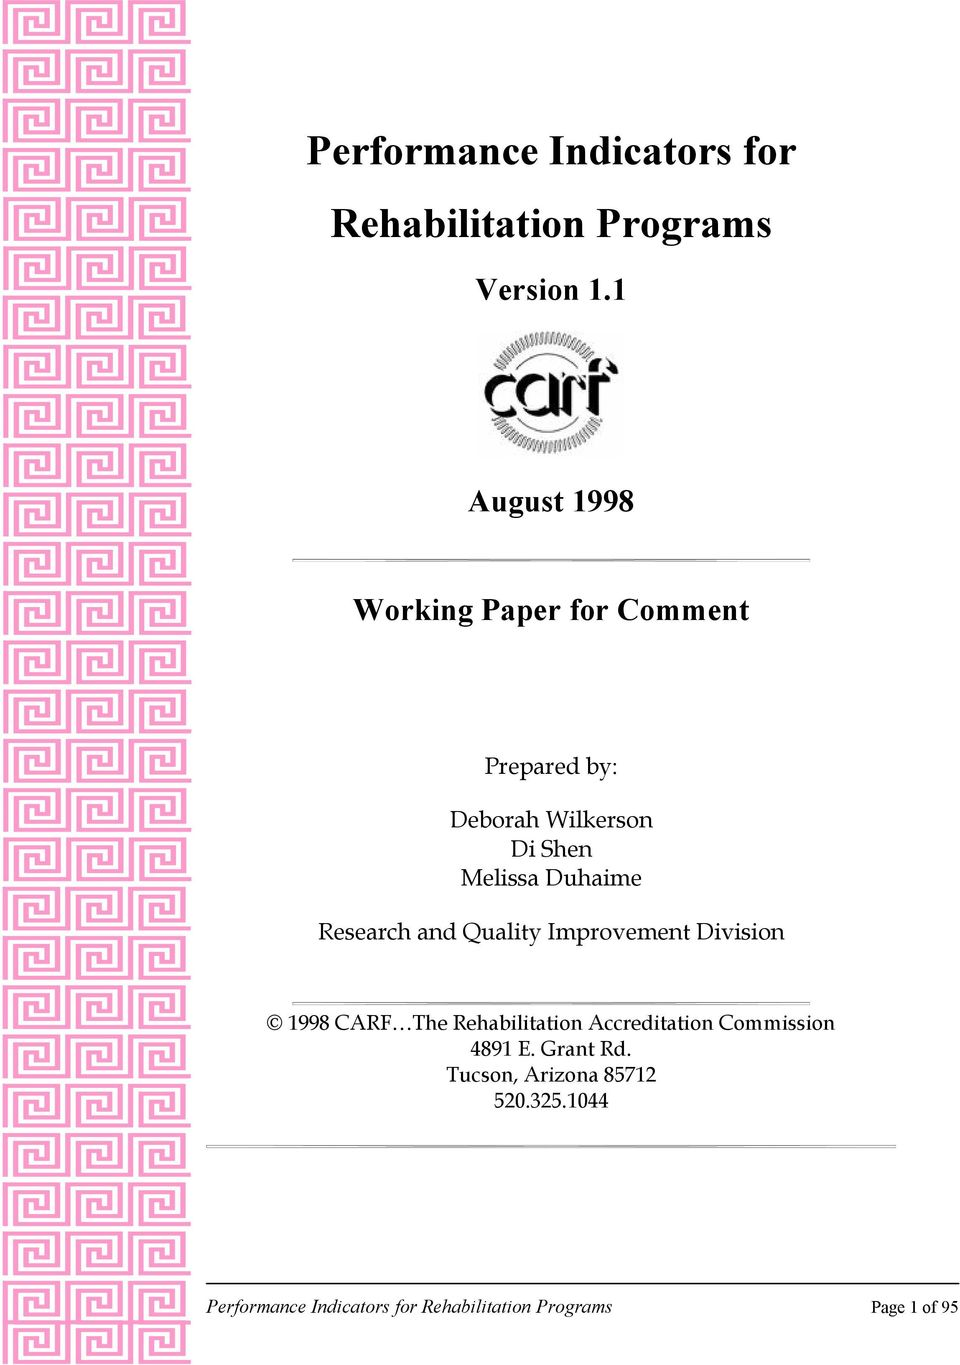 Duhaime Research and Quality Improvement Division 1998 CARF The Rehabilitation